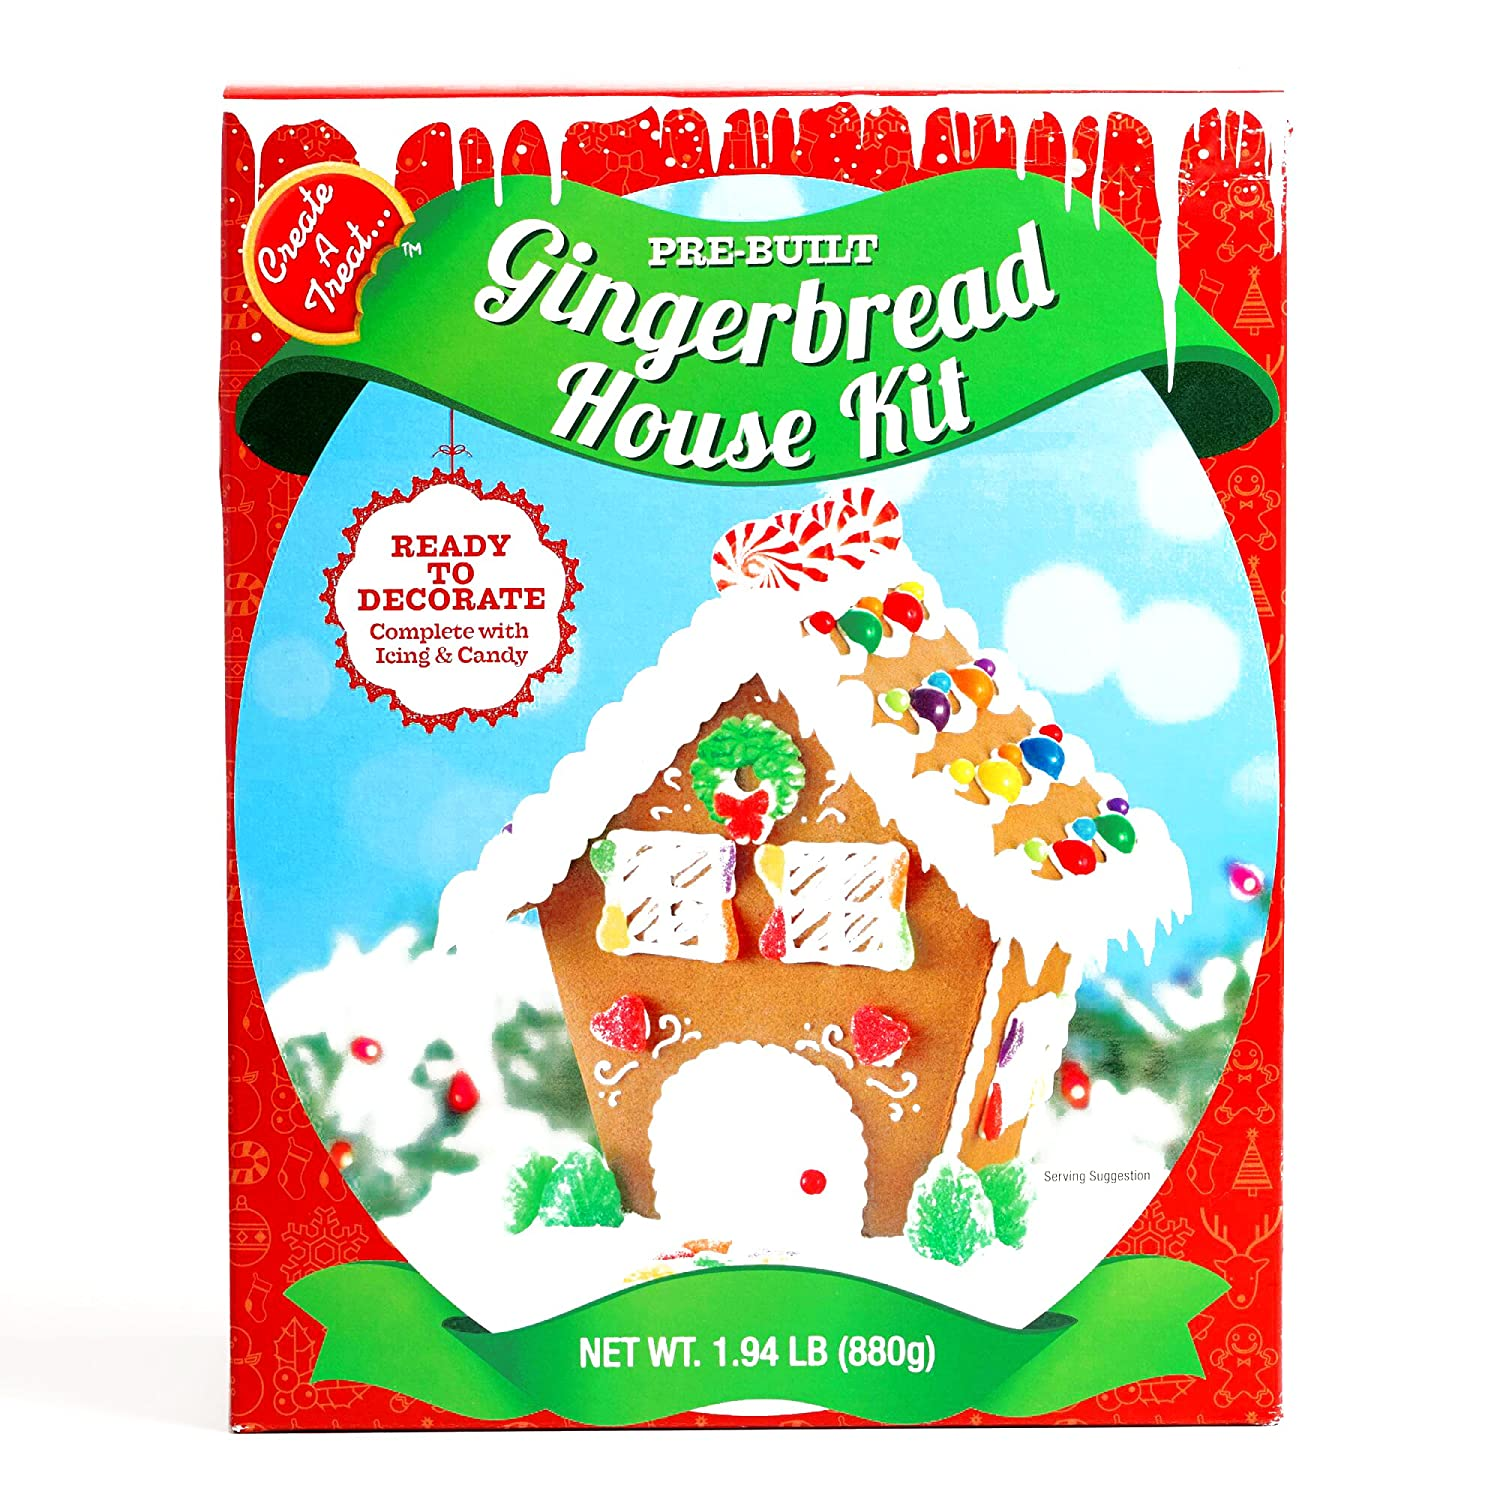 Christmas Gingerbread House Kit.Chalet Gingerbread House Kit 1 Unit Per Order Gourmet Christmas Gift For The Holidays